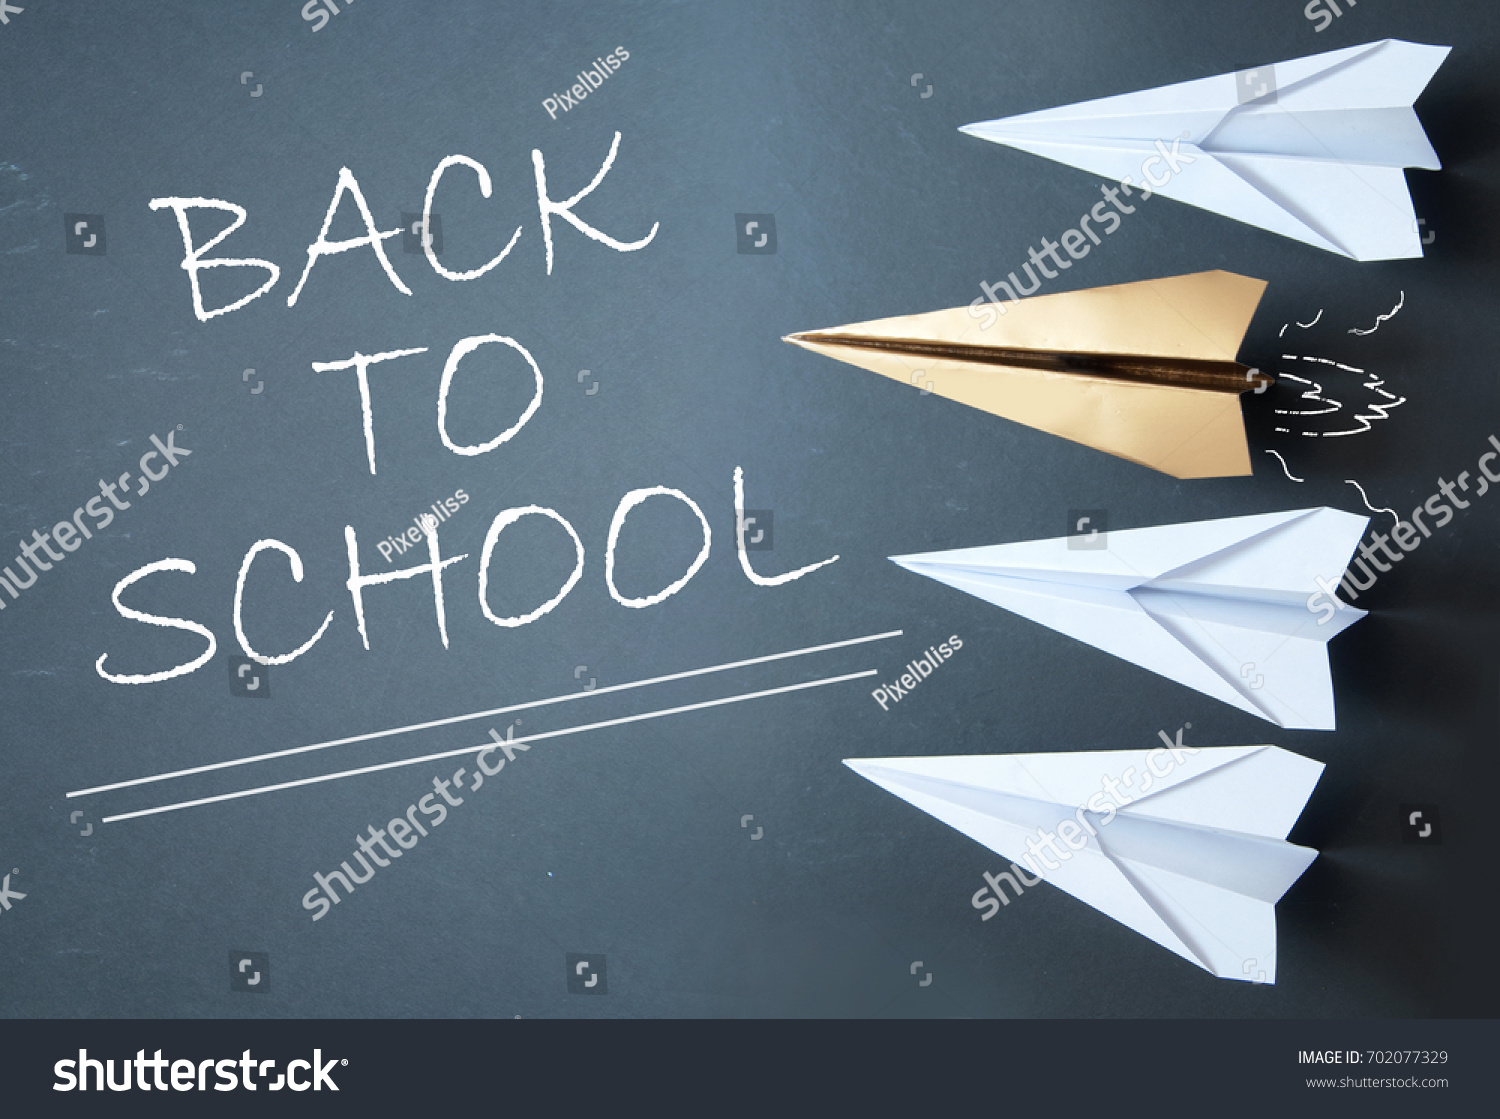 Back school handwritten on chalkboard gold stock photo 702077329 back to school handwritten on chalkboard with gold paper plane standing out in a line of jeuxipadfo Image collections